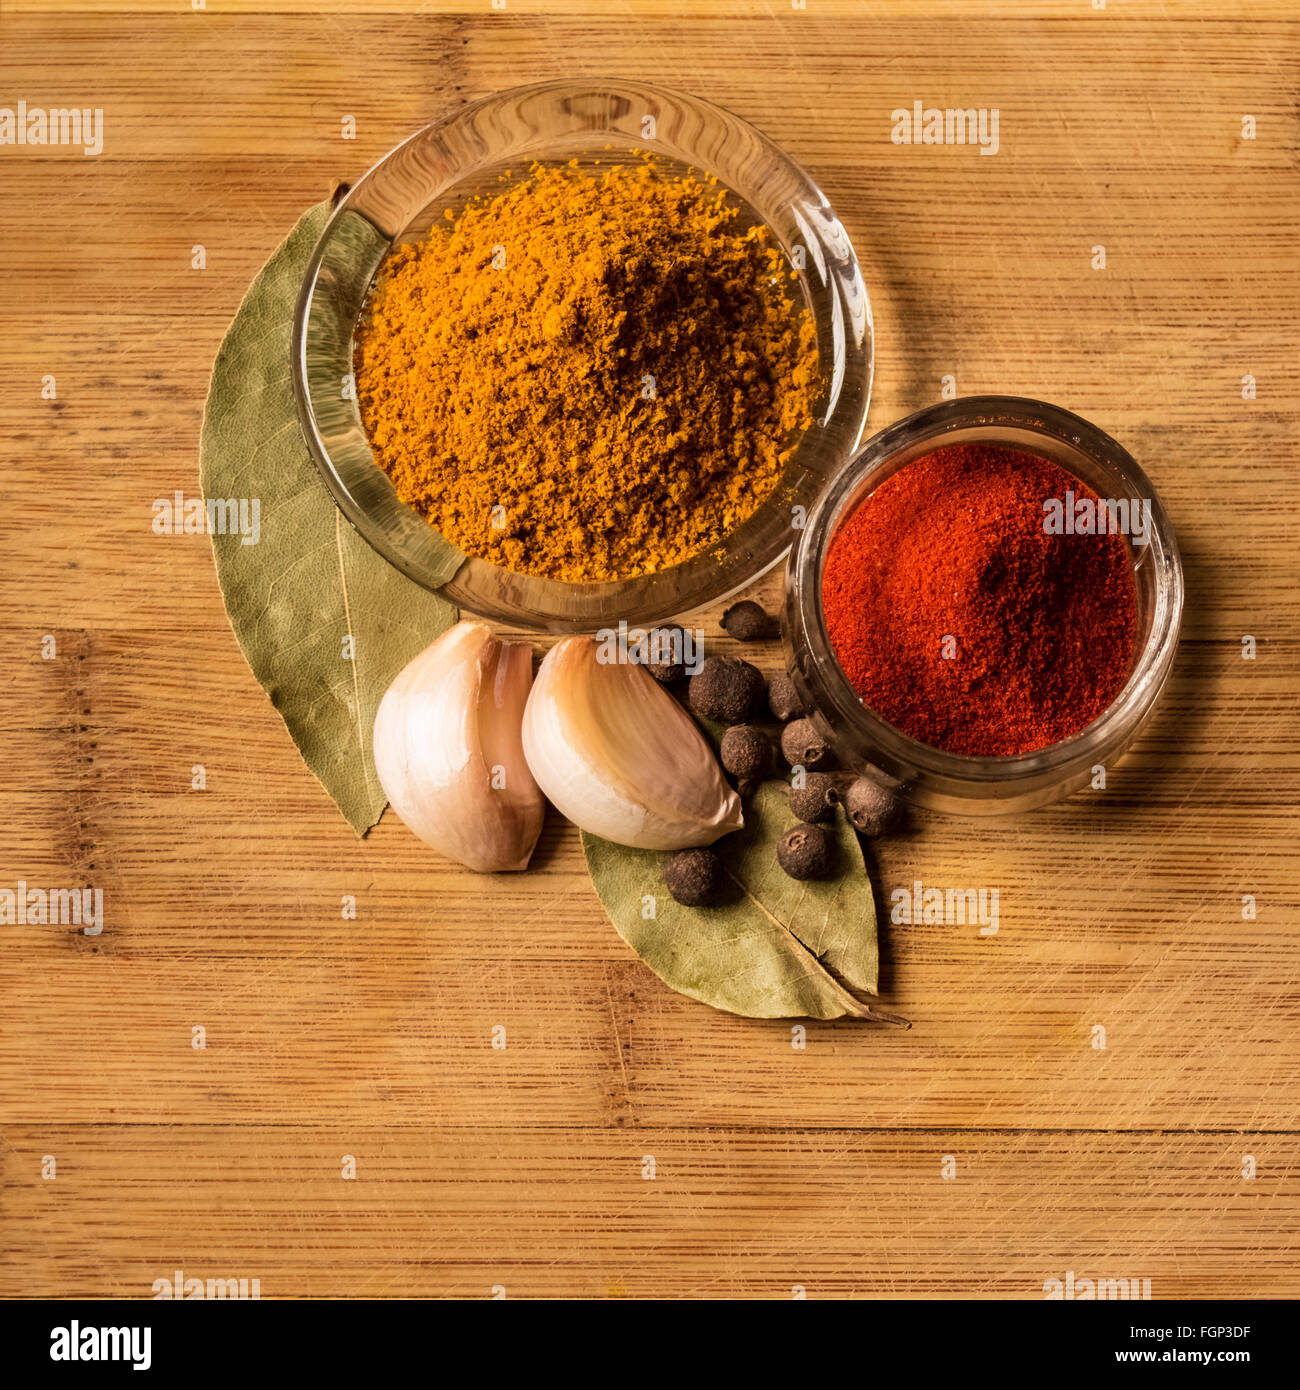 Spices on wooden background - Stock Image